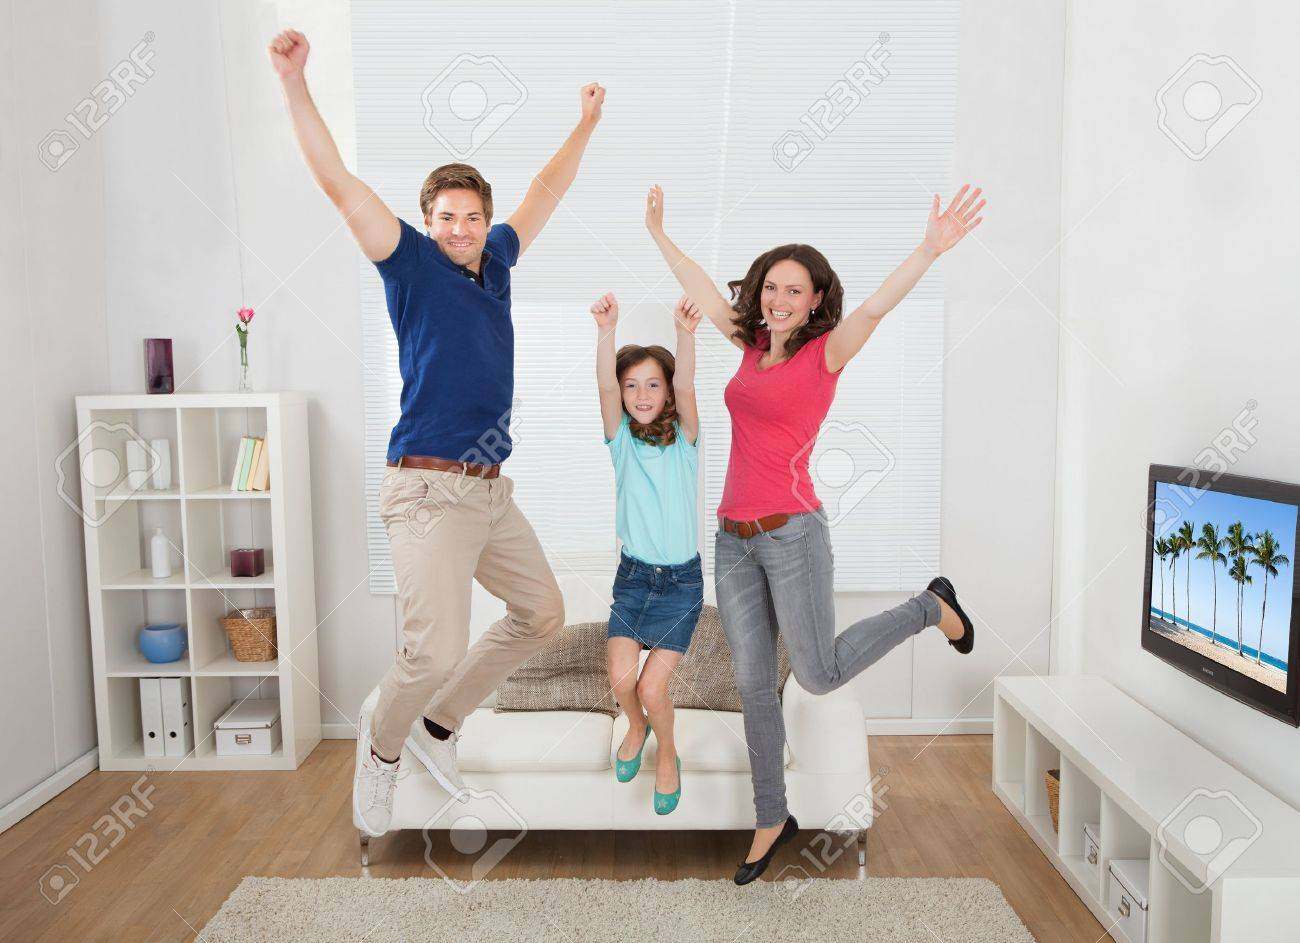 Full Length Portrait Of Excited Family With Arms Raised Jumping ...